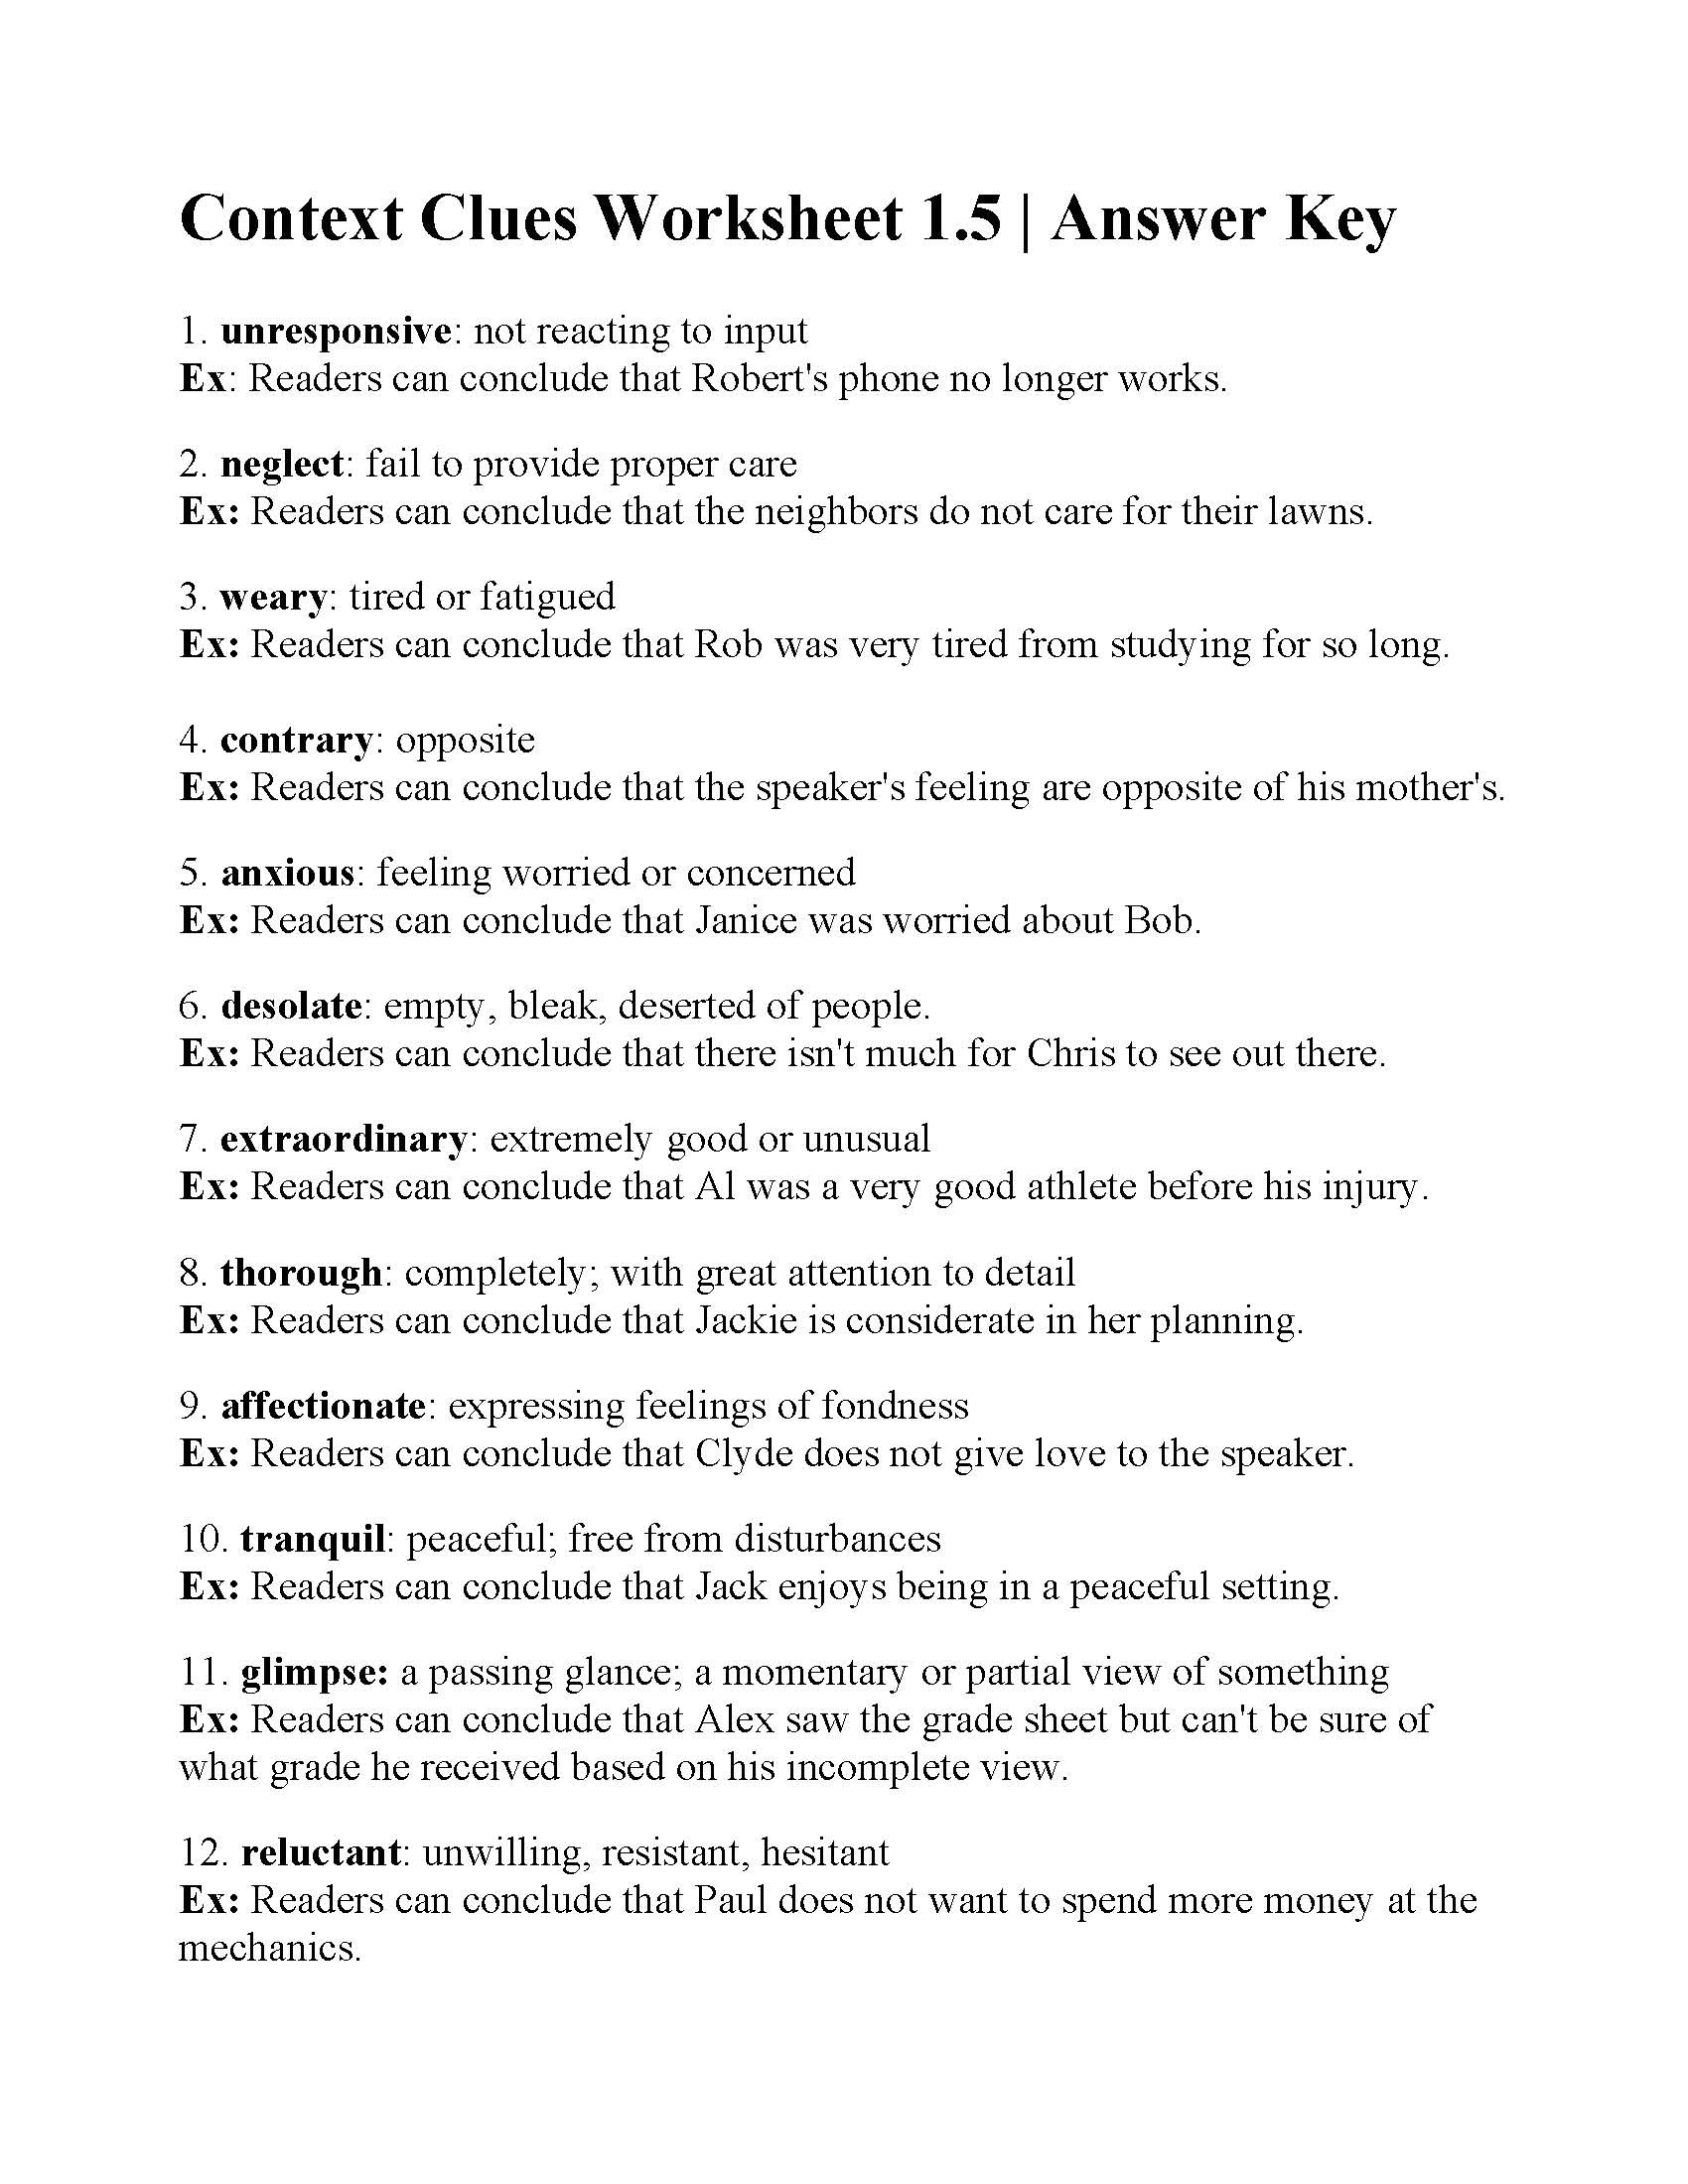 Context Clues Worksheet 1.5 | Answers - Free Printable 5Th Grade Context Clues Worksheets